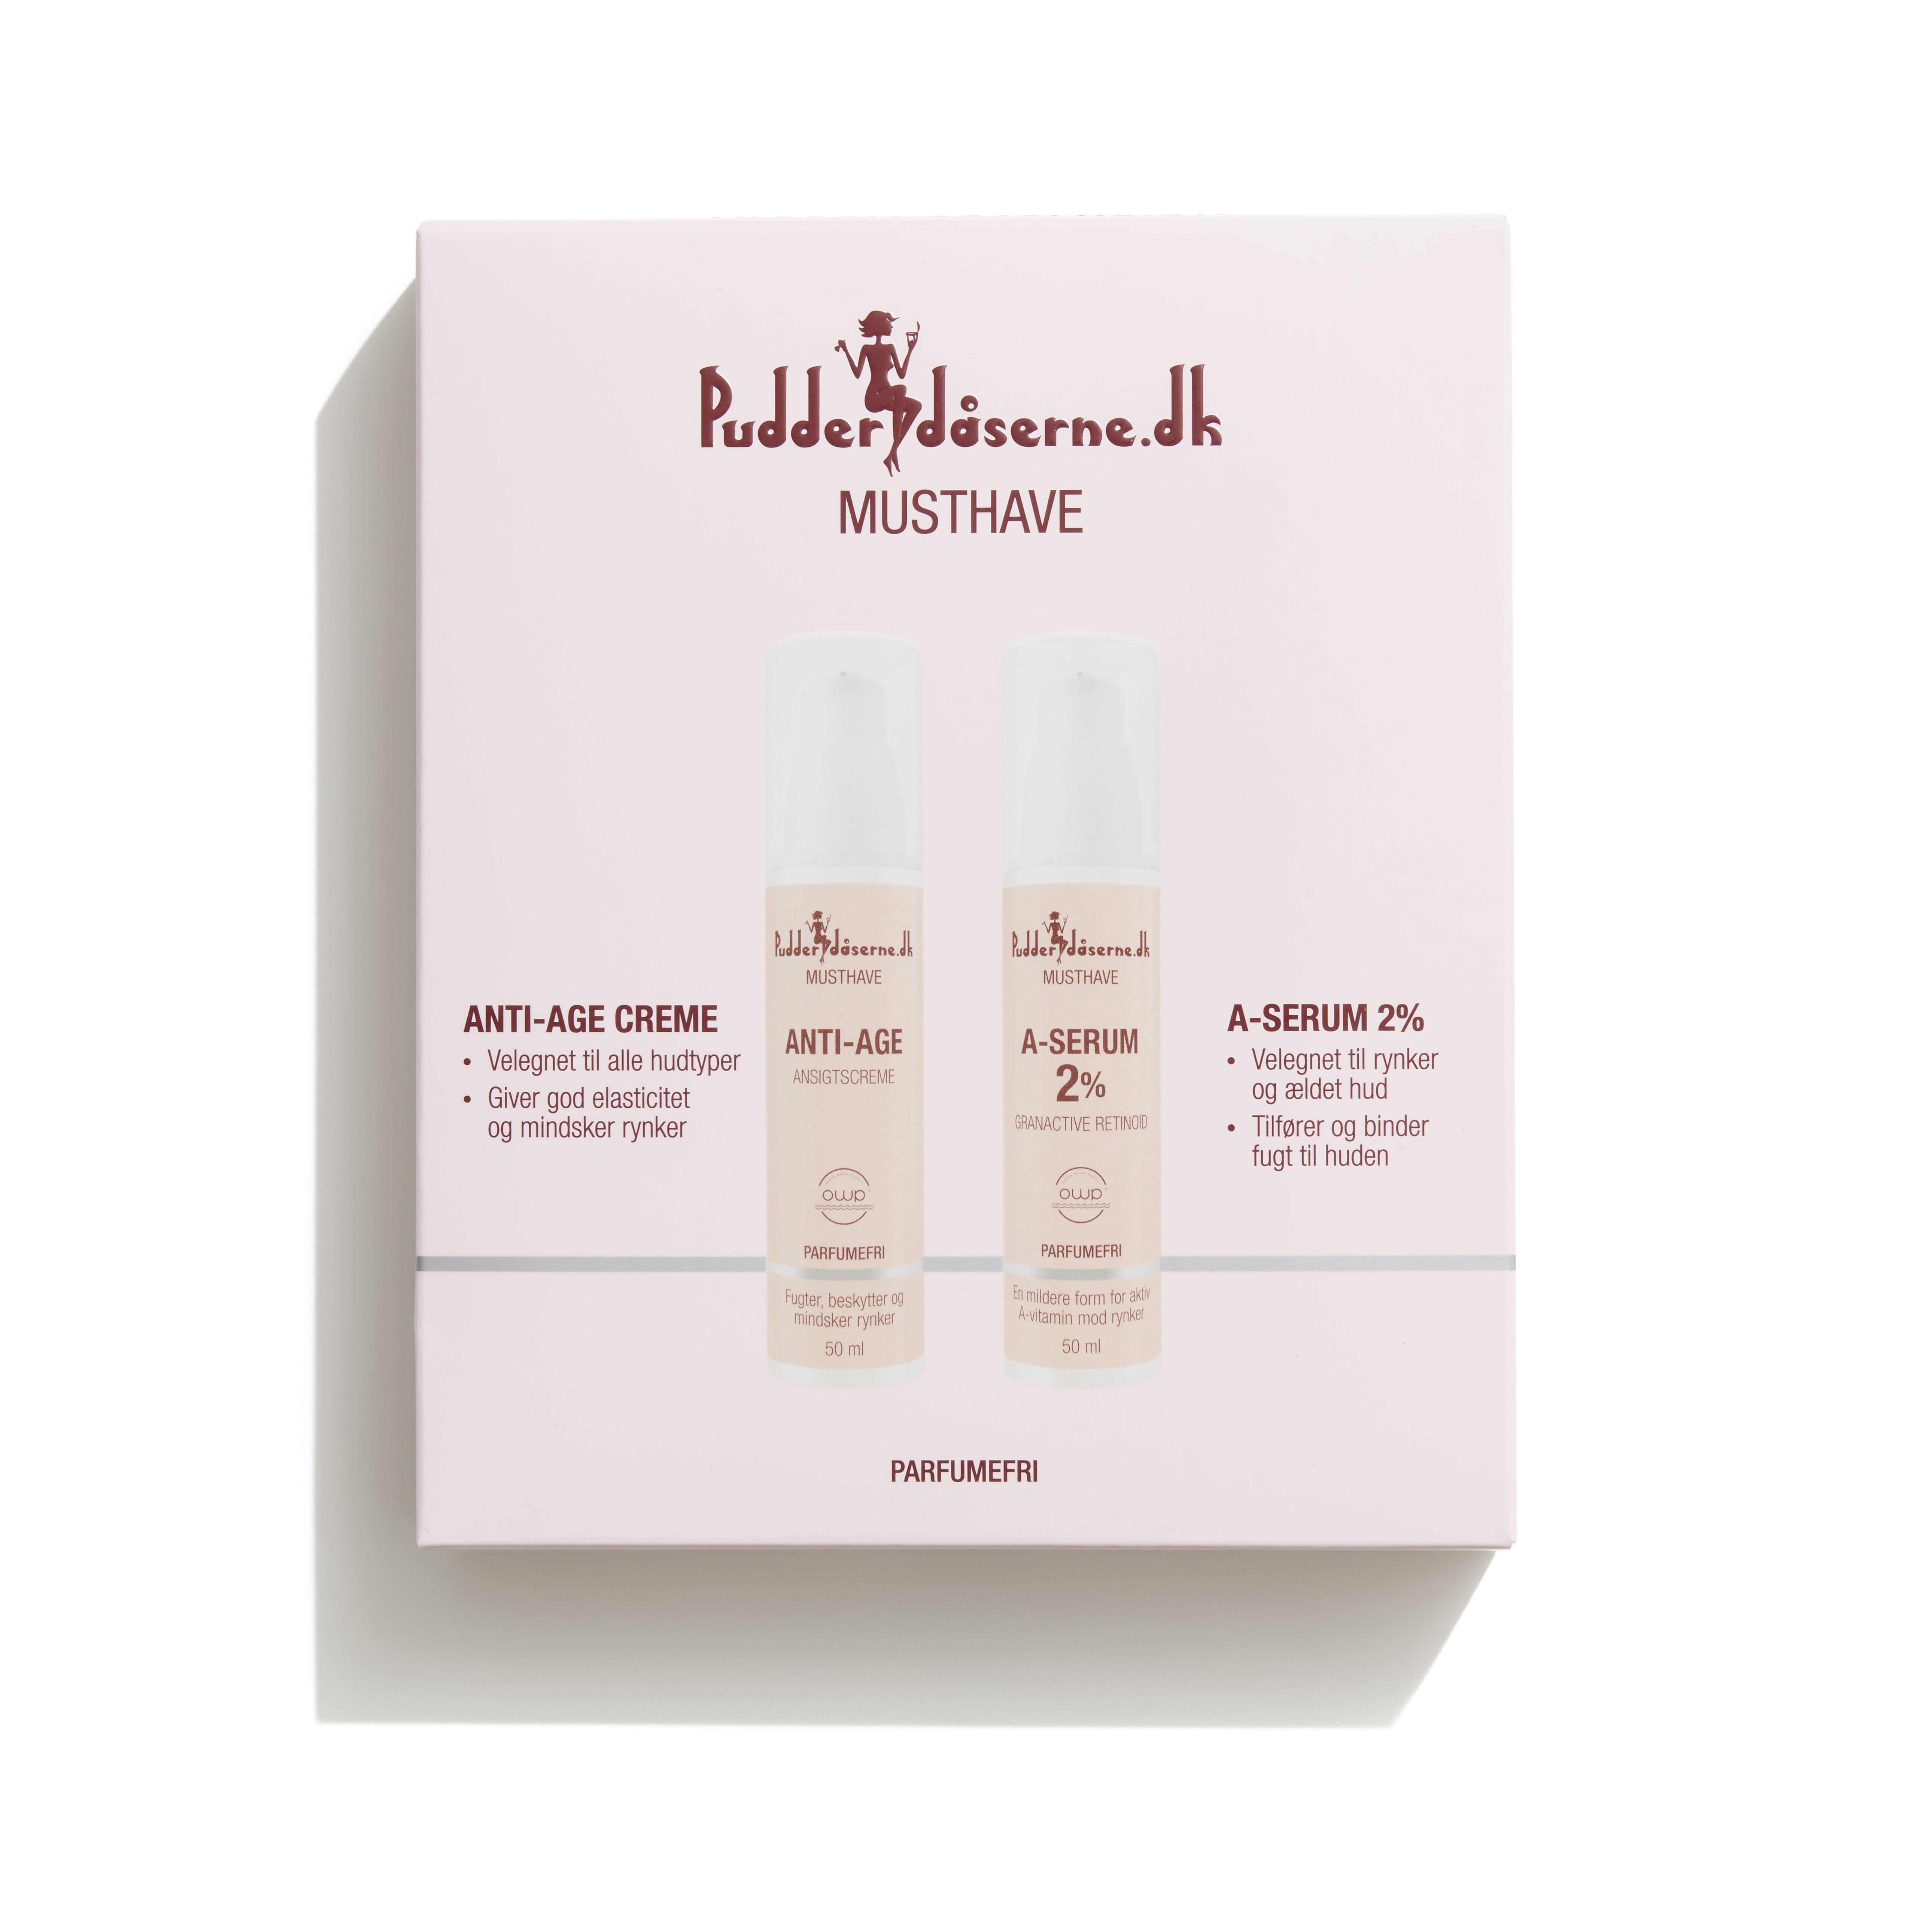 Pudderdåserne - MUST HAVE To Wrinkles, Pigment Spots & Crow's Feet 